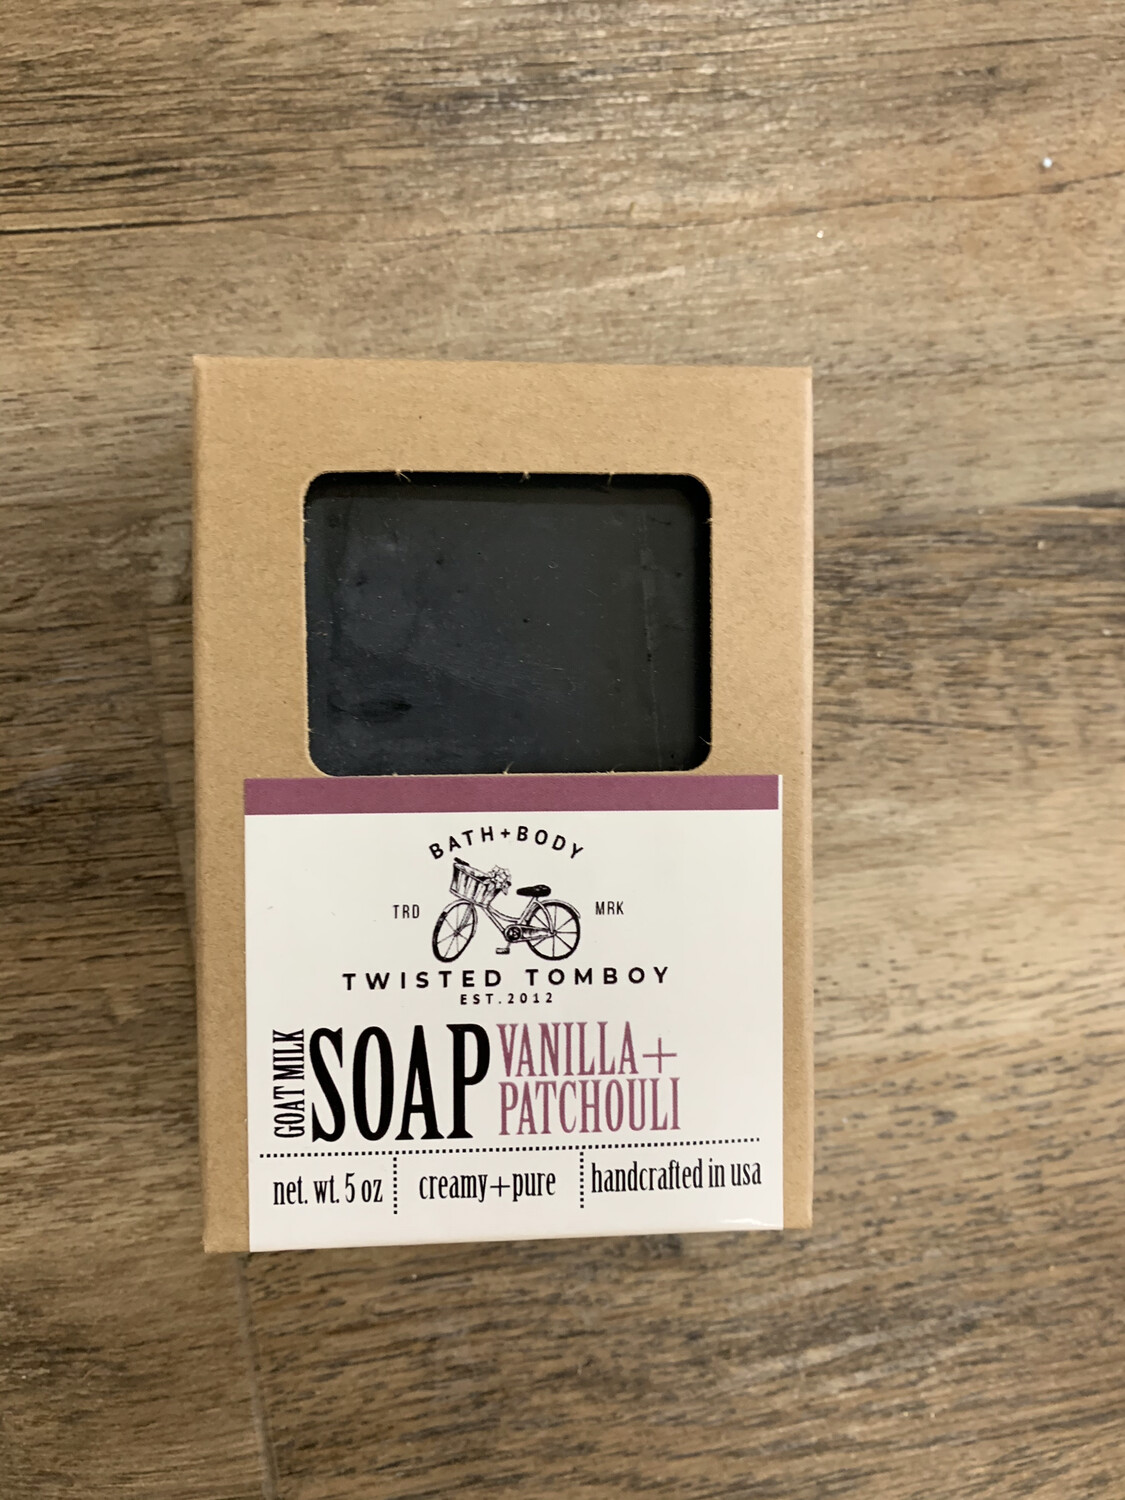 Vanilla+Patchouli Goats Milk Soap